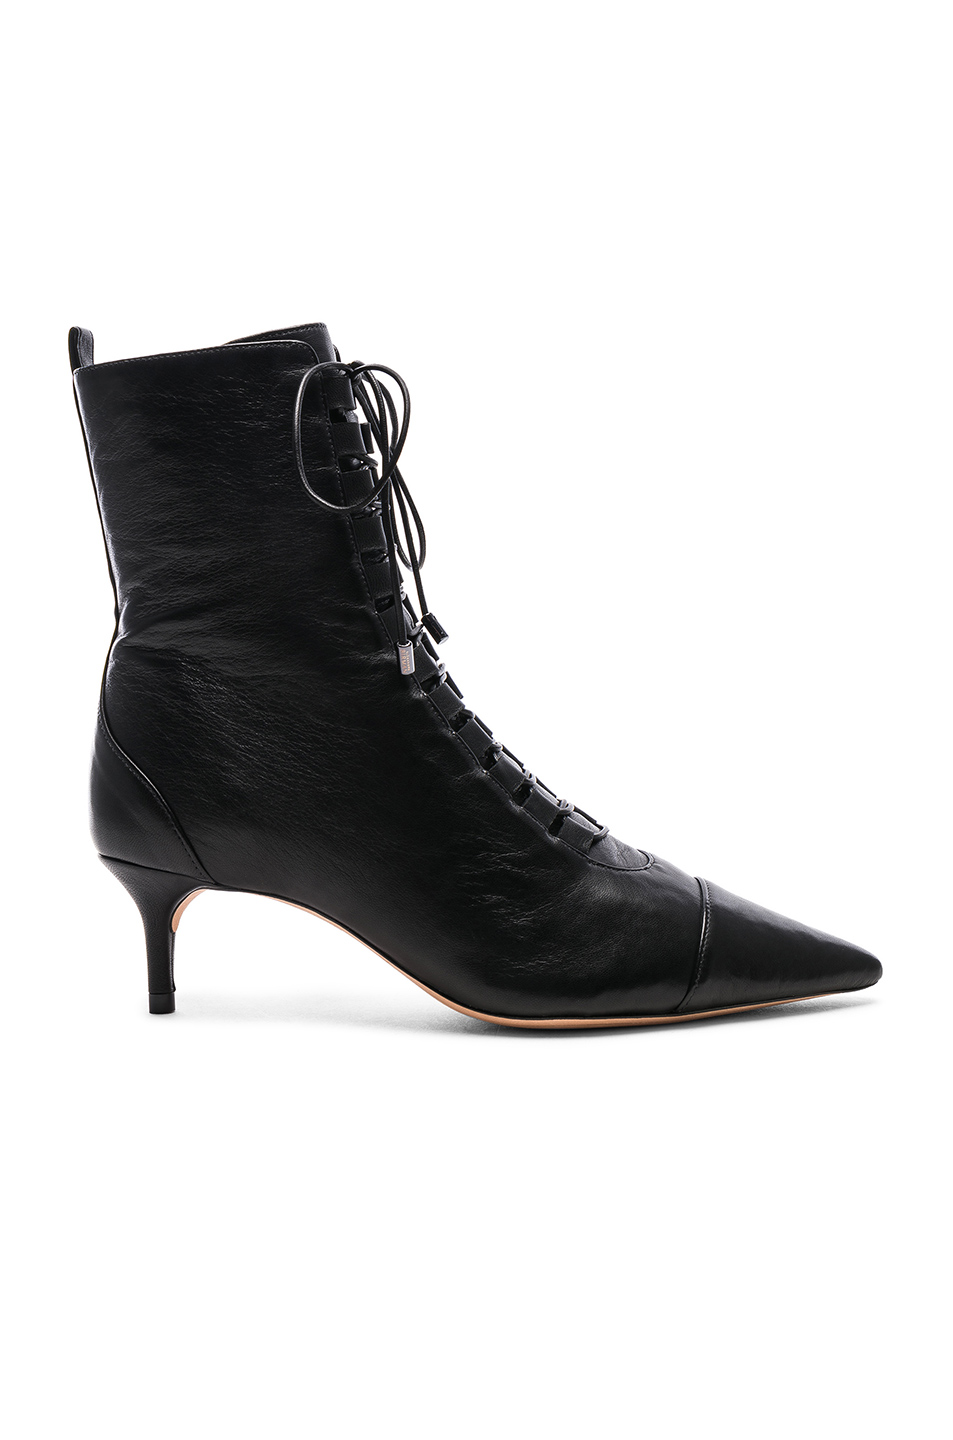 b2d976a1345a Buy Original Alexandre Birman Leather Millen Lace Up Ankle Boots at ...